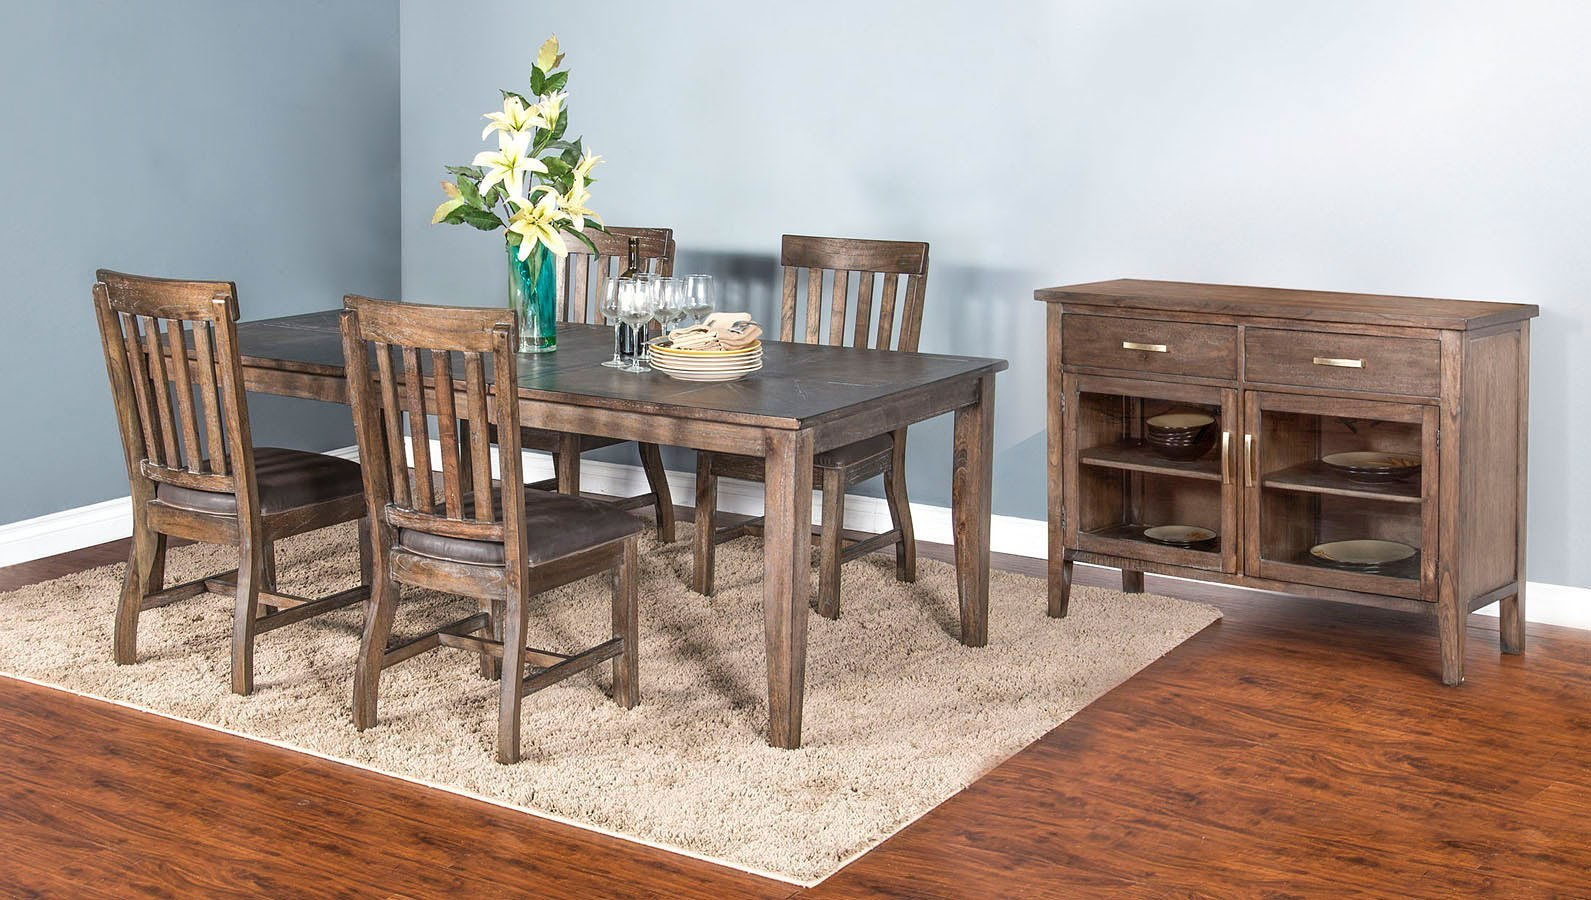 Reno Extension Dining Room Set by Sunny Designs ...